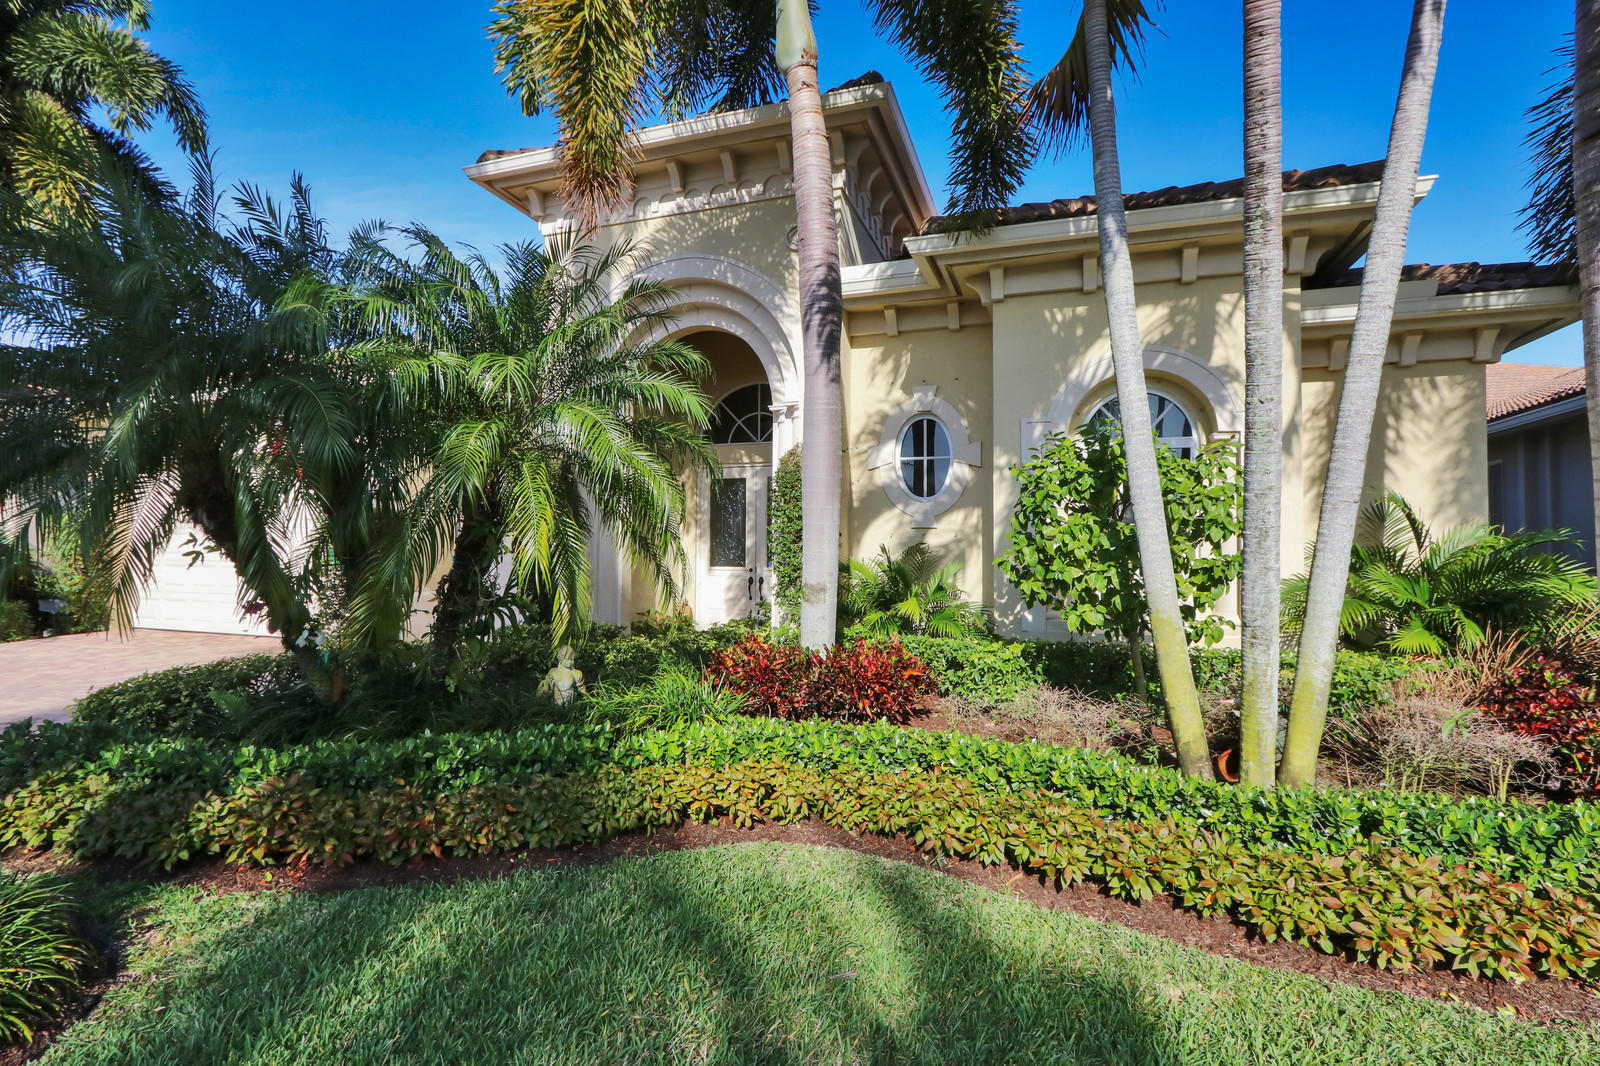 222 Montant Drive, Palm Beach Gardens, Florida 33410, 4 Bedrooms Bedrooms, ,3.1 BathroomsBathrooms,A,Single family,Montant,RX-10610143